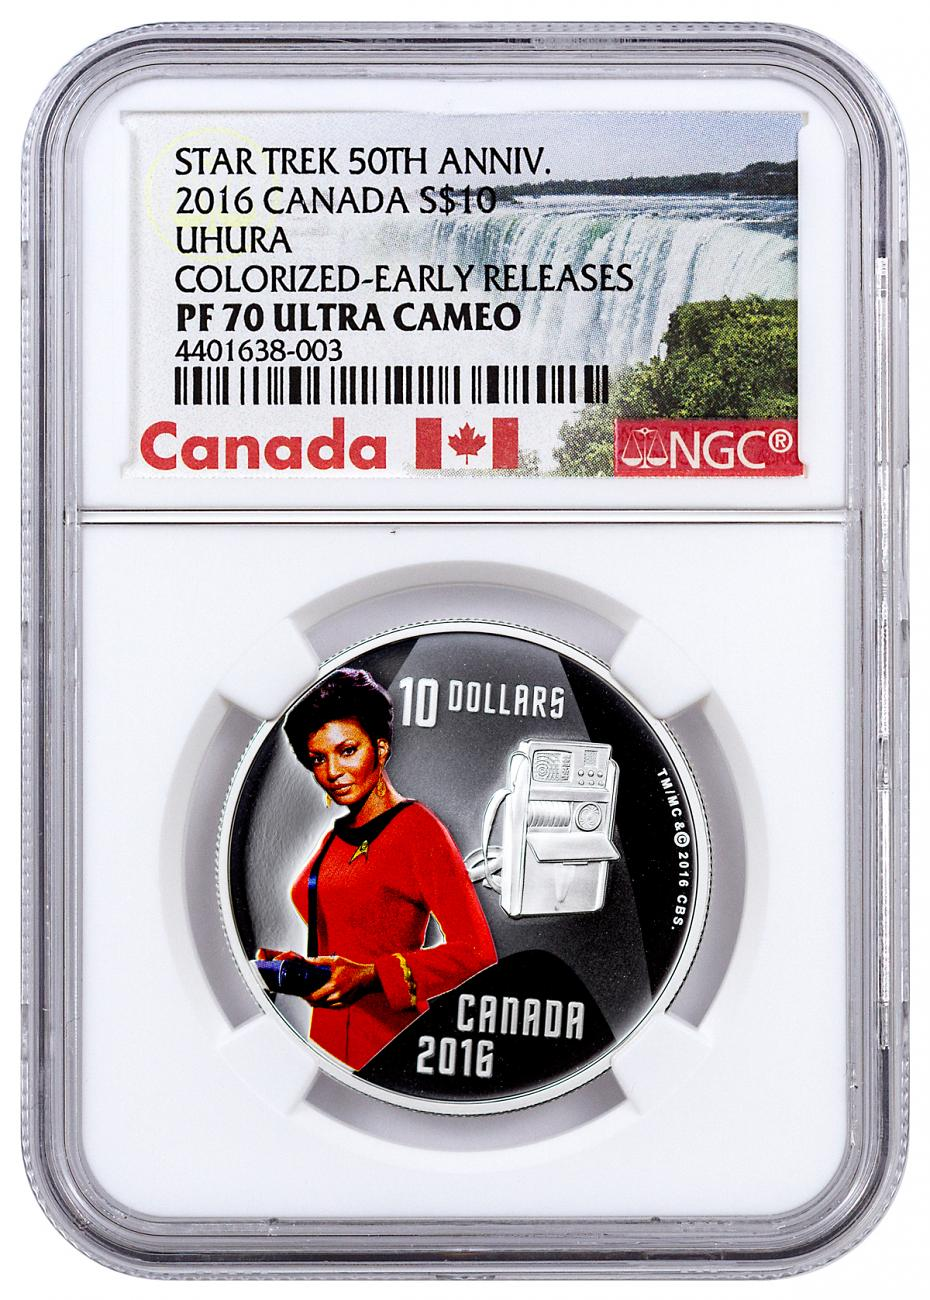 2016 Canada $10 1/2 oz. Colorized Proof Silver Star Trek - Uhura - NGC PF70 UC Early Releases (Exclusive Canada Label)